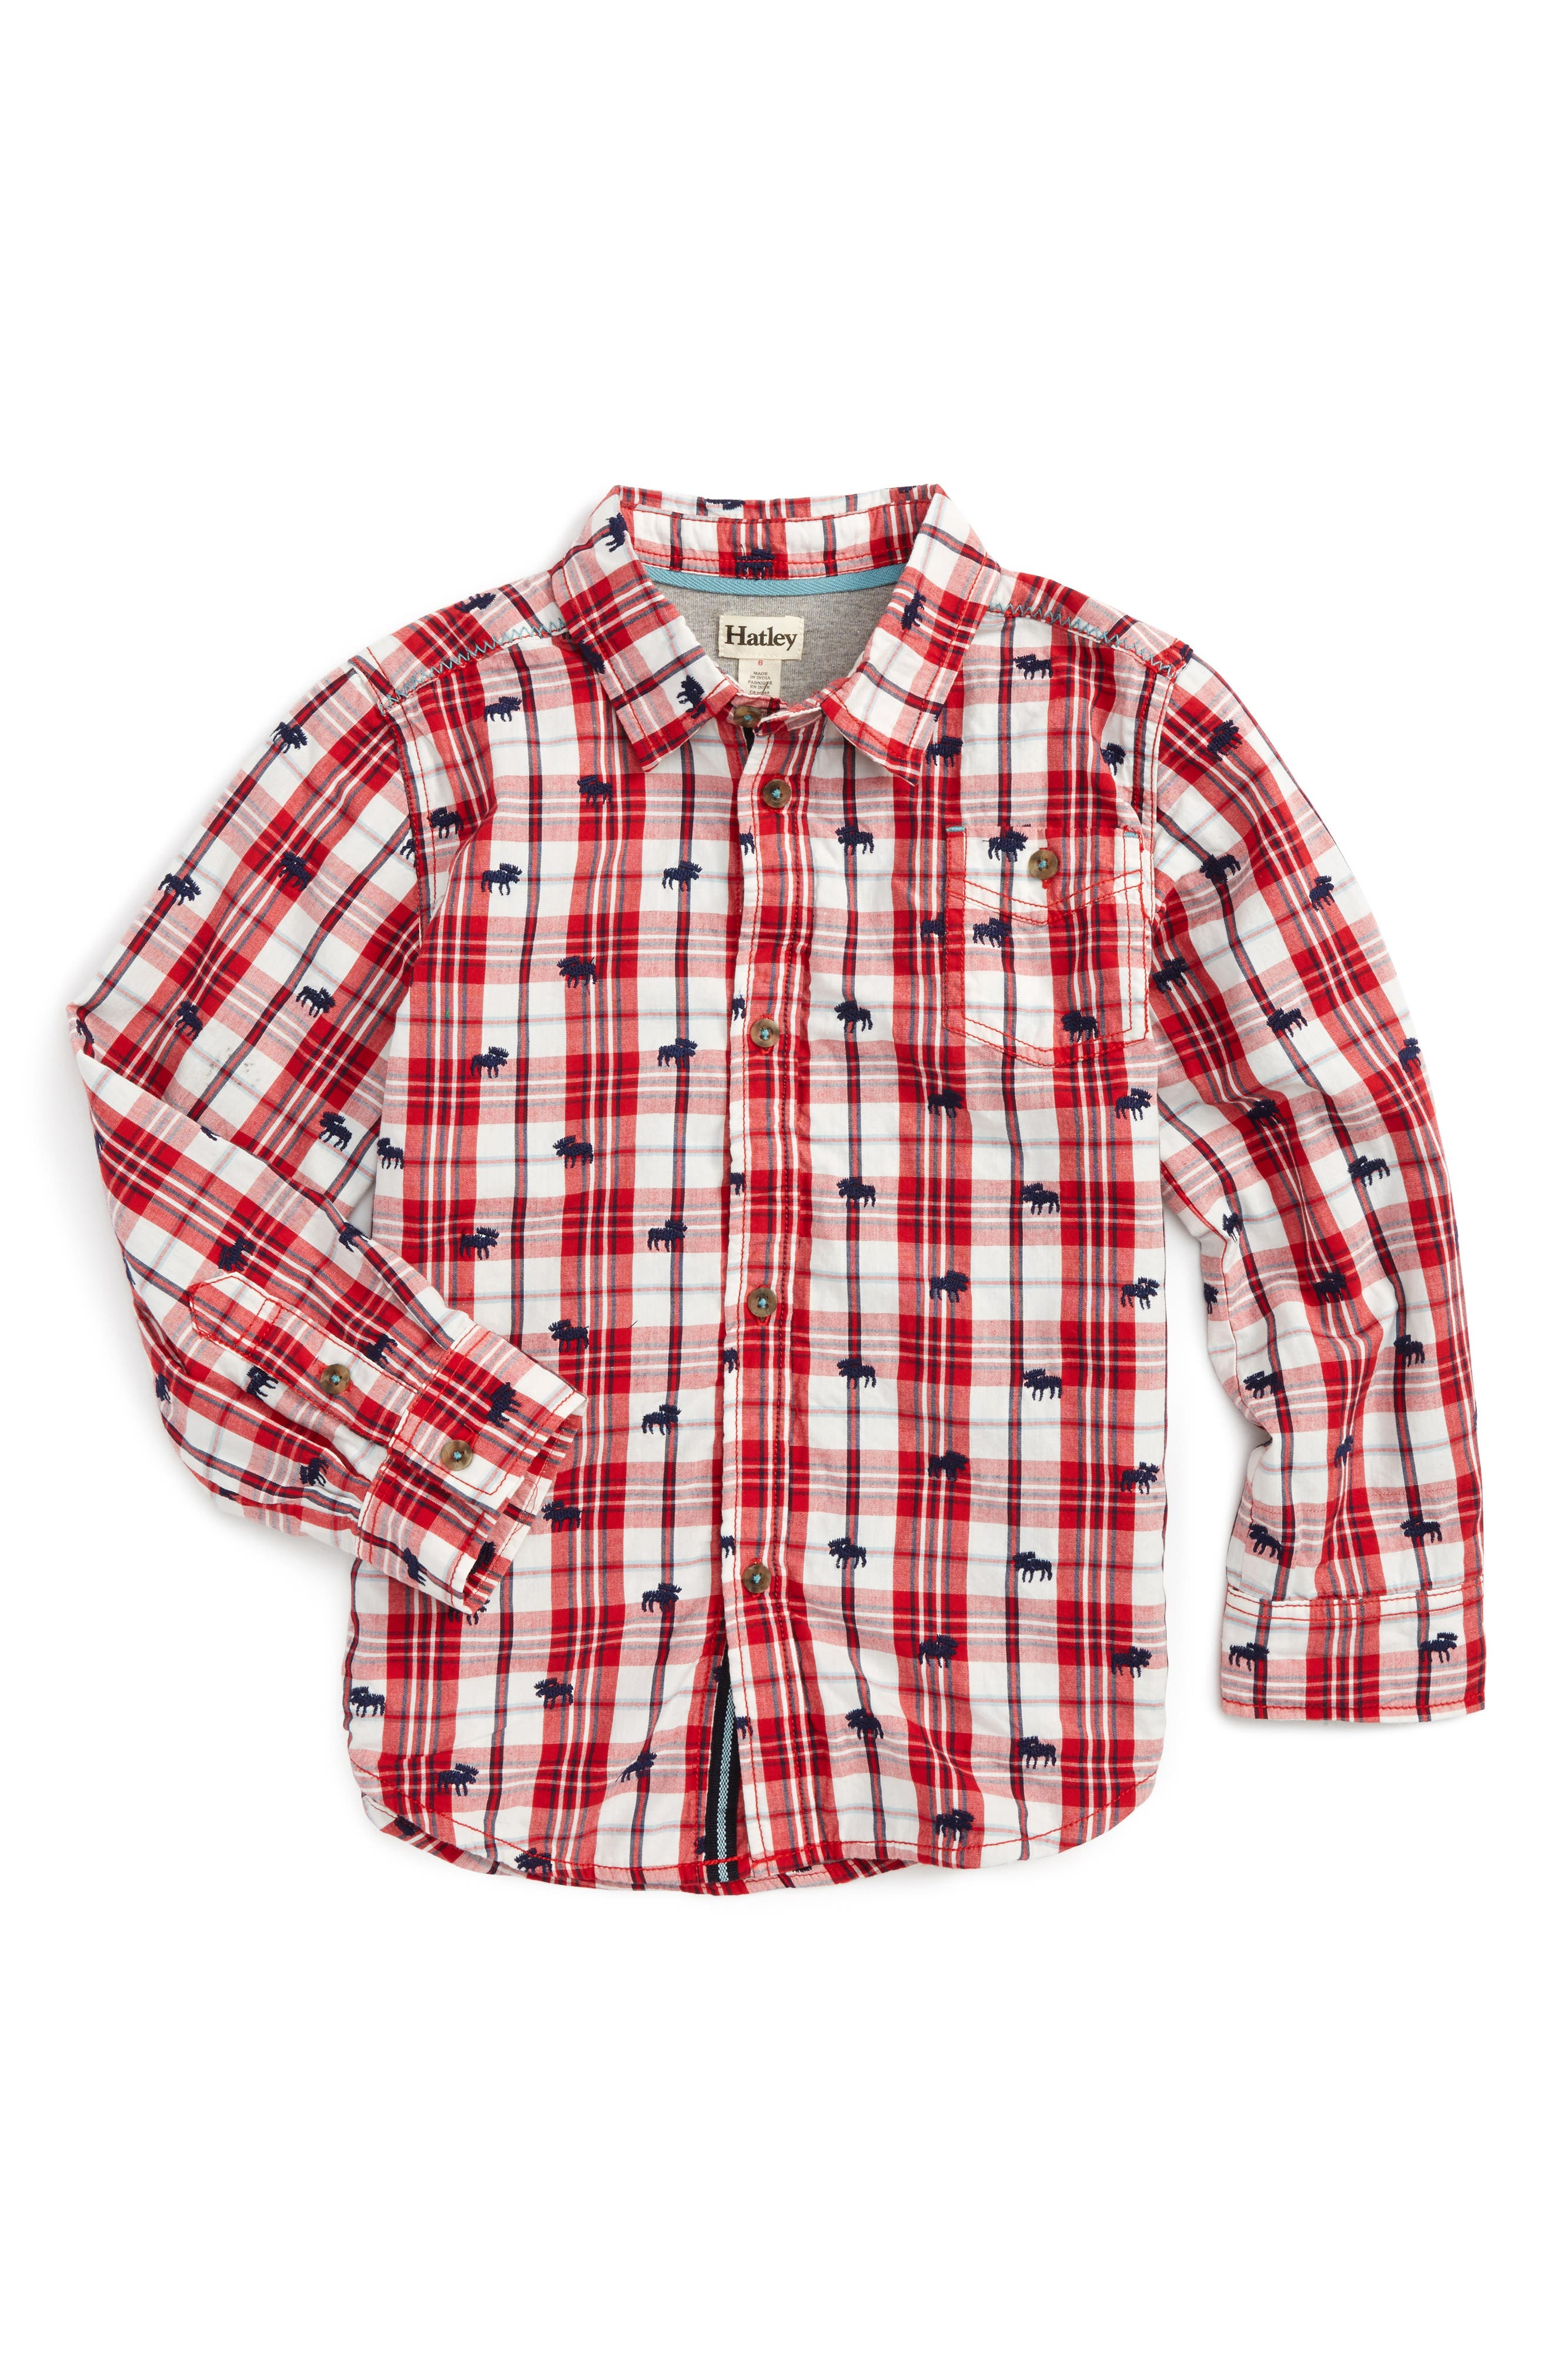 HATLEY Embroidered Plaid Shirt